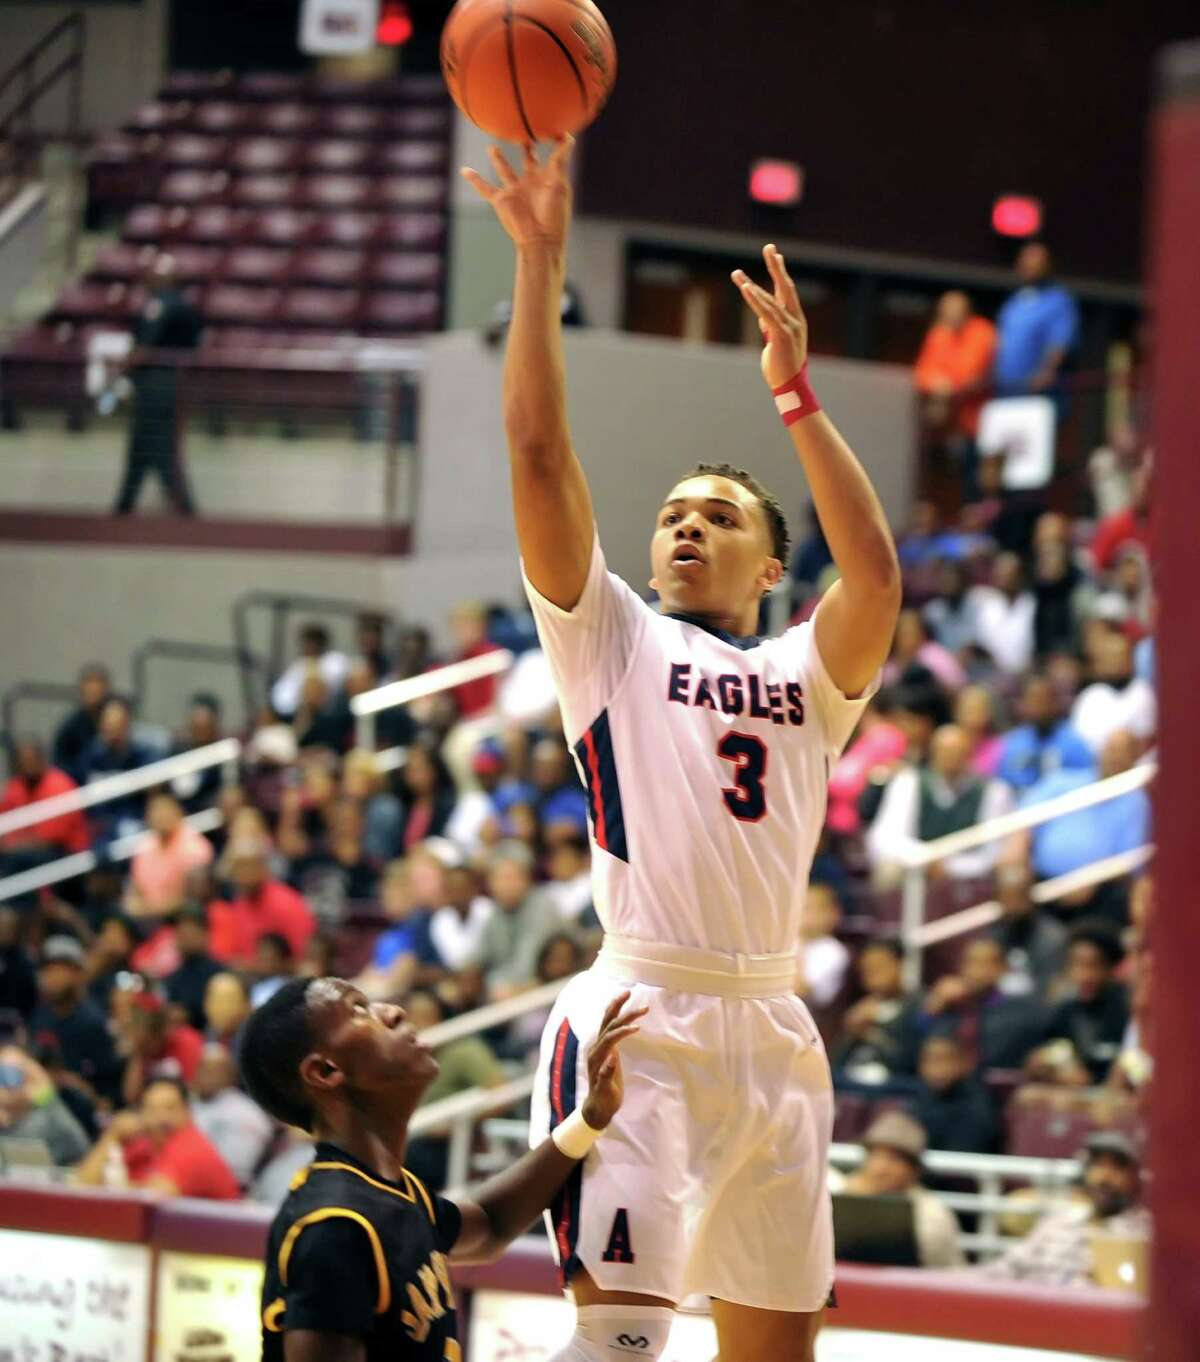 Atascocita High School basketball team defeated Sam Houston in the RCS Season Opener held at M.O. Campbell Center, 11-16-2015. Right, Carsen Edwards (3) of Atascocita, had a clear shot and scored on this layup.